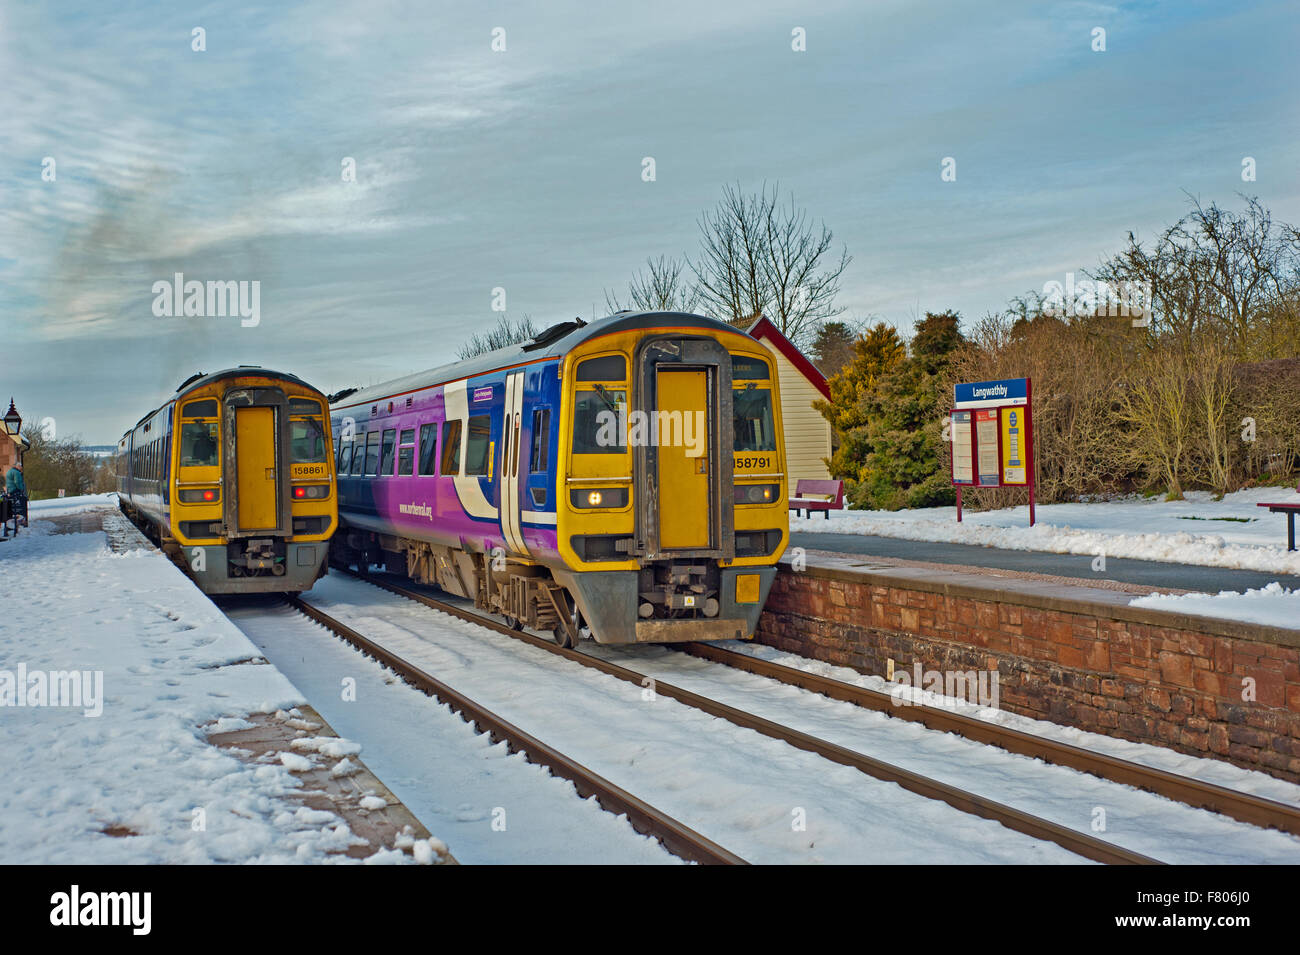 Class 158 Sprinters at Langwathby, Settle to Carlisle railway - Stock Image